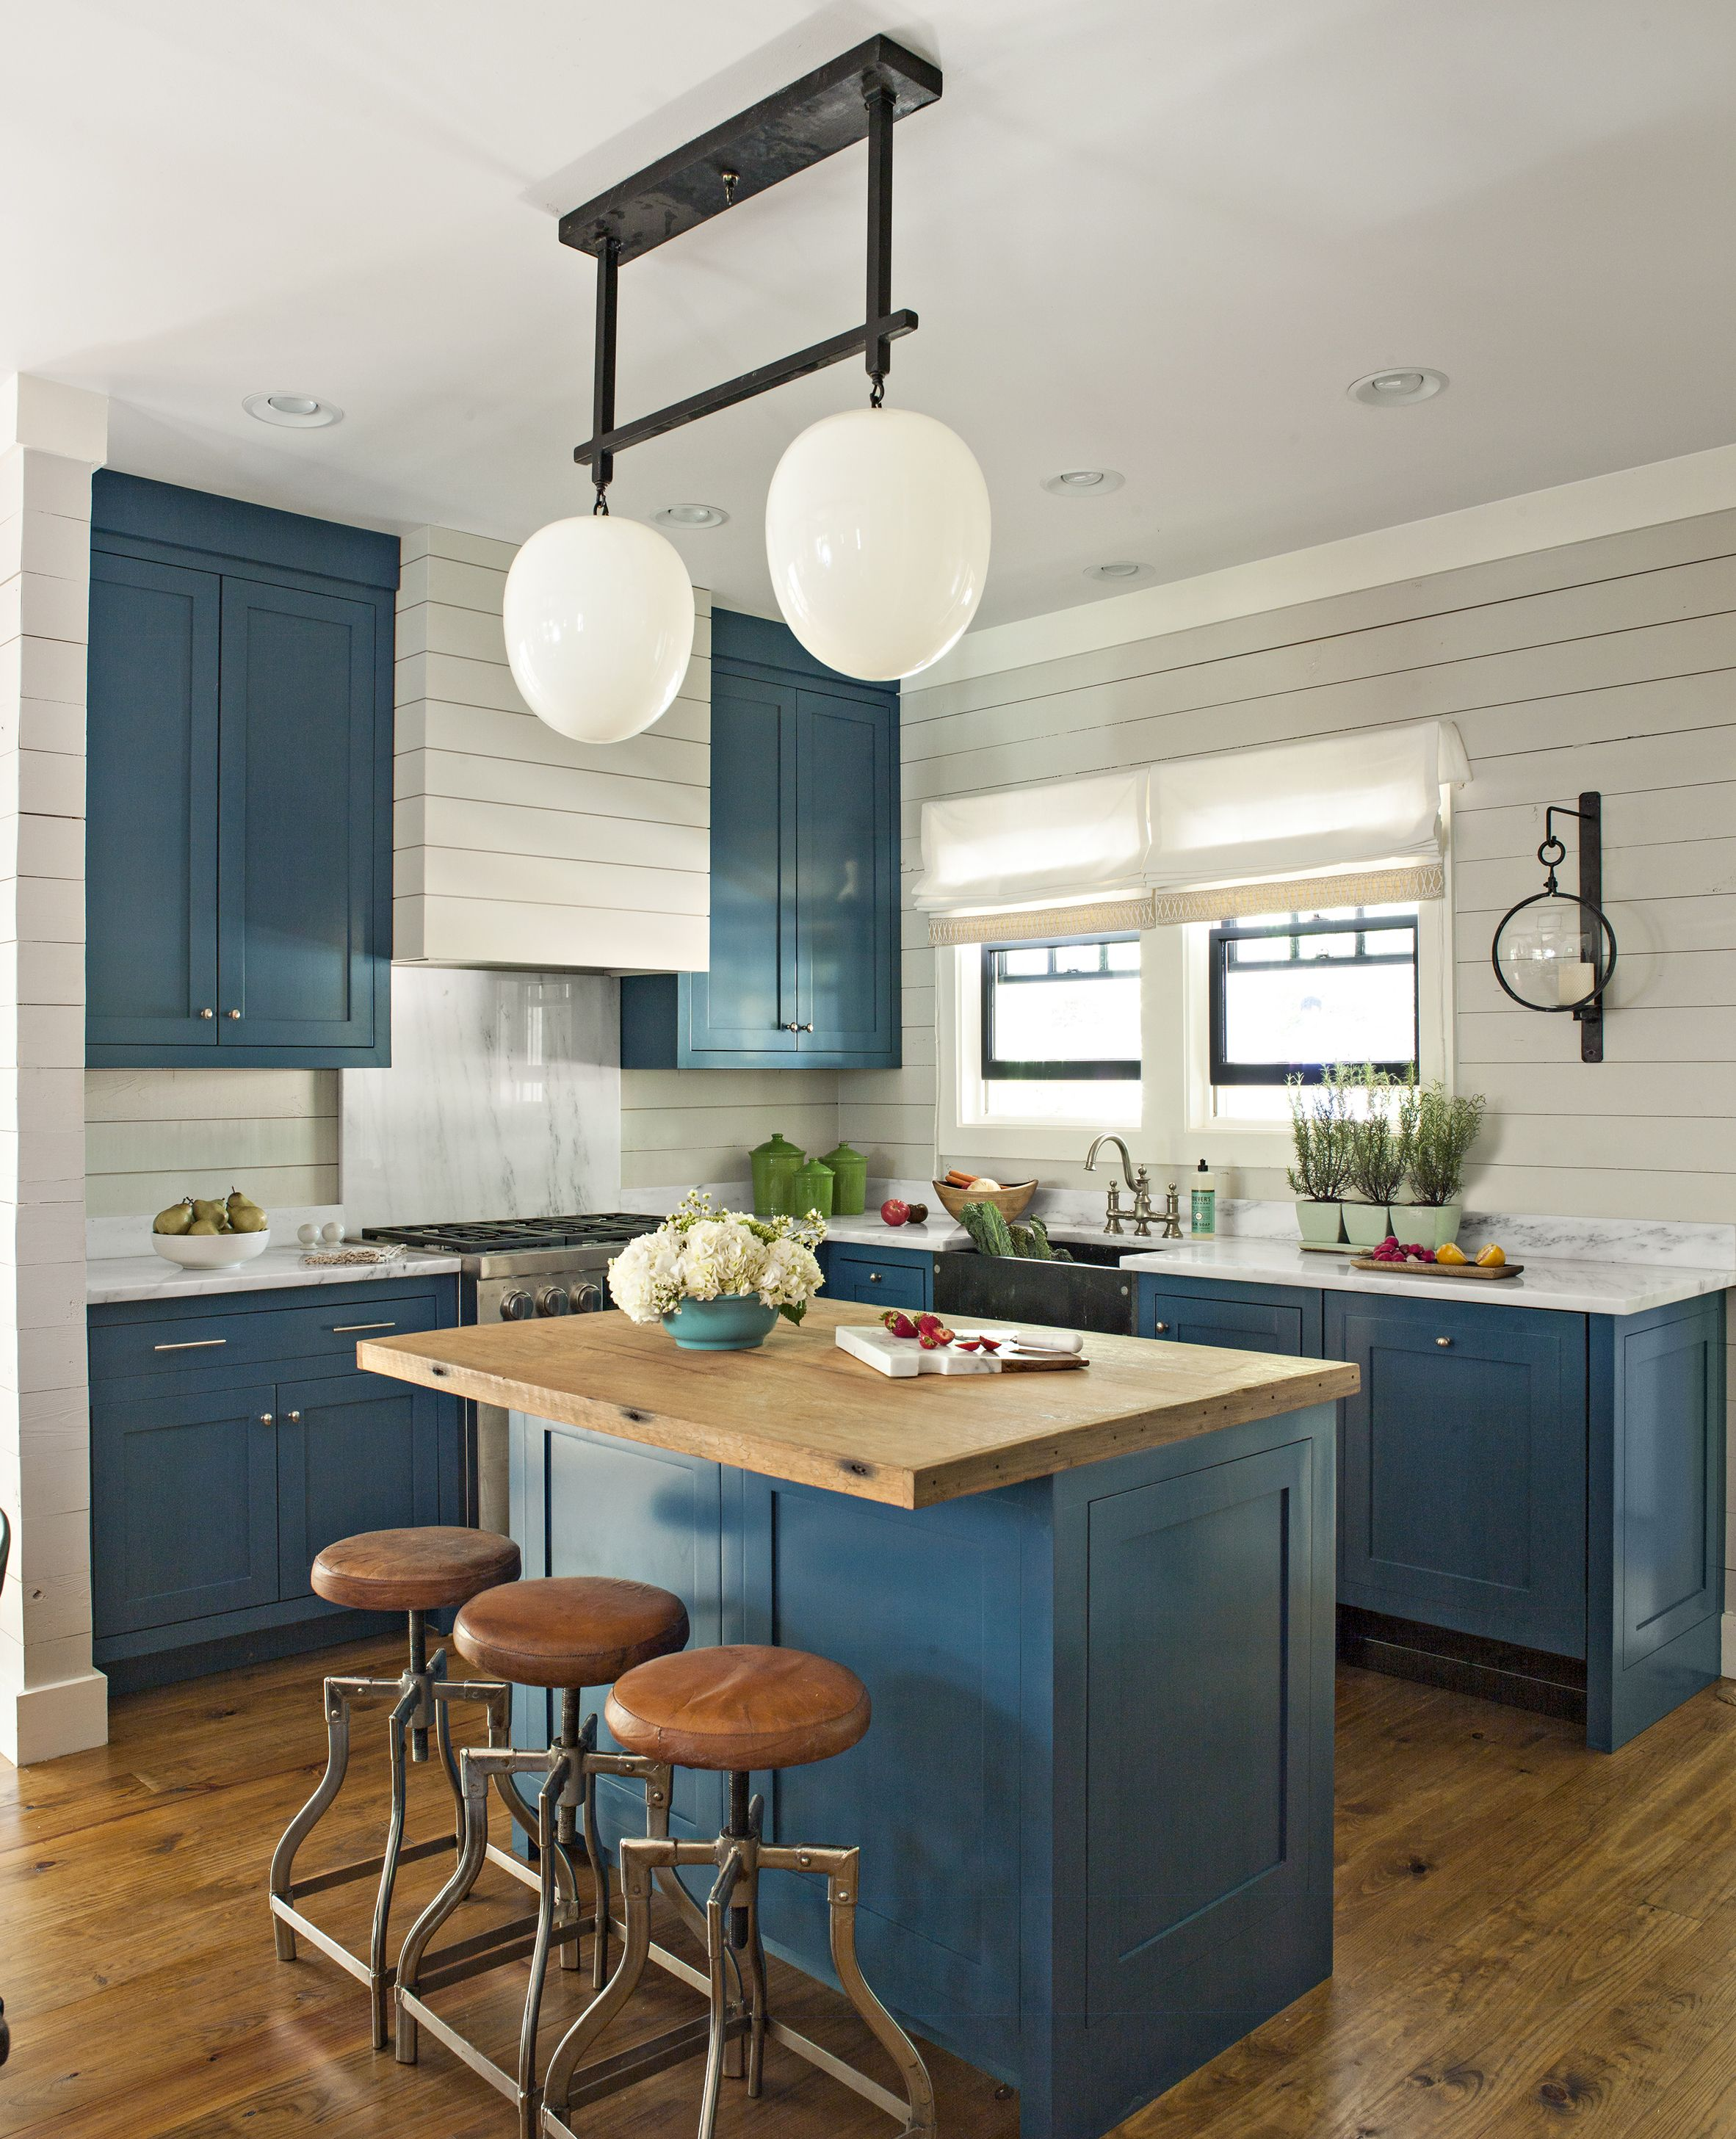 Idea House 2015 Cottage At Cloudland Station Kitchen Design Small New Kitchen Cabinets Kitchen Cabinet Colors